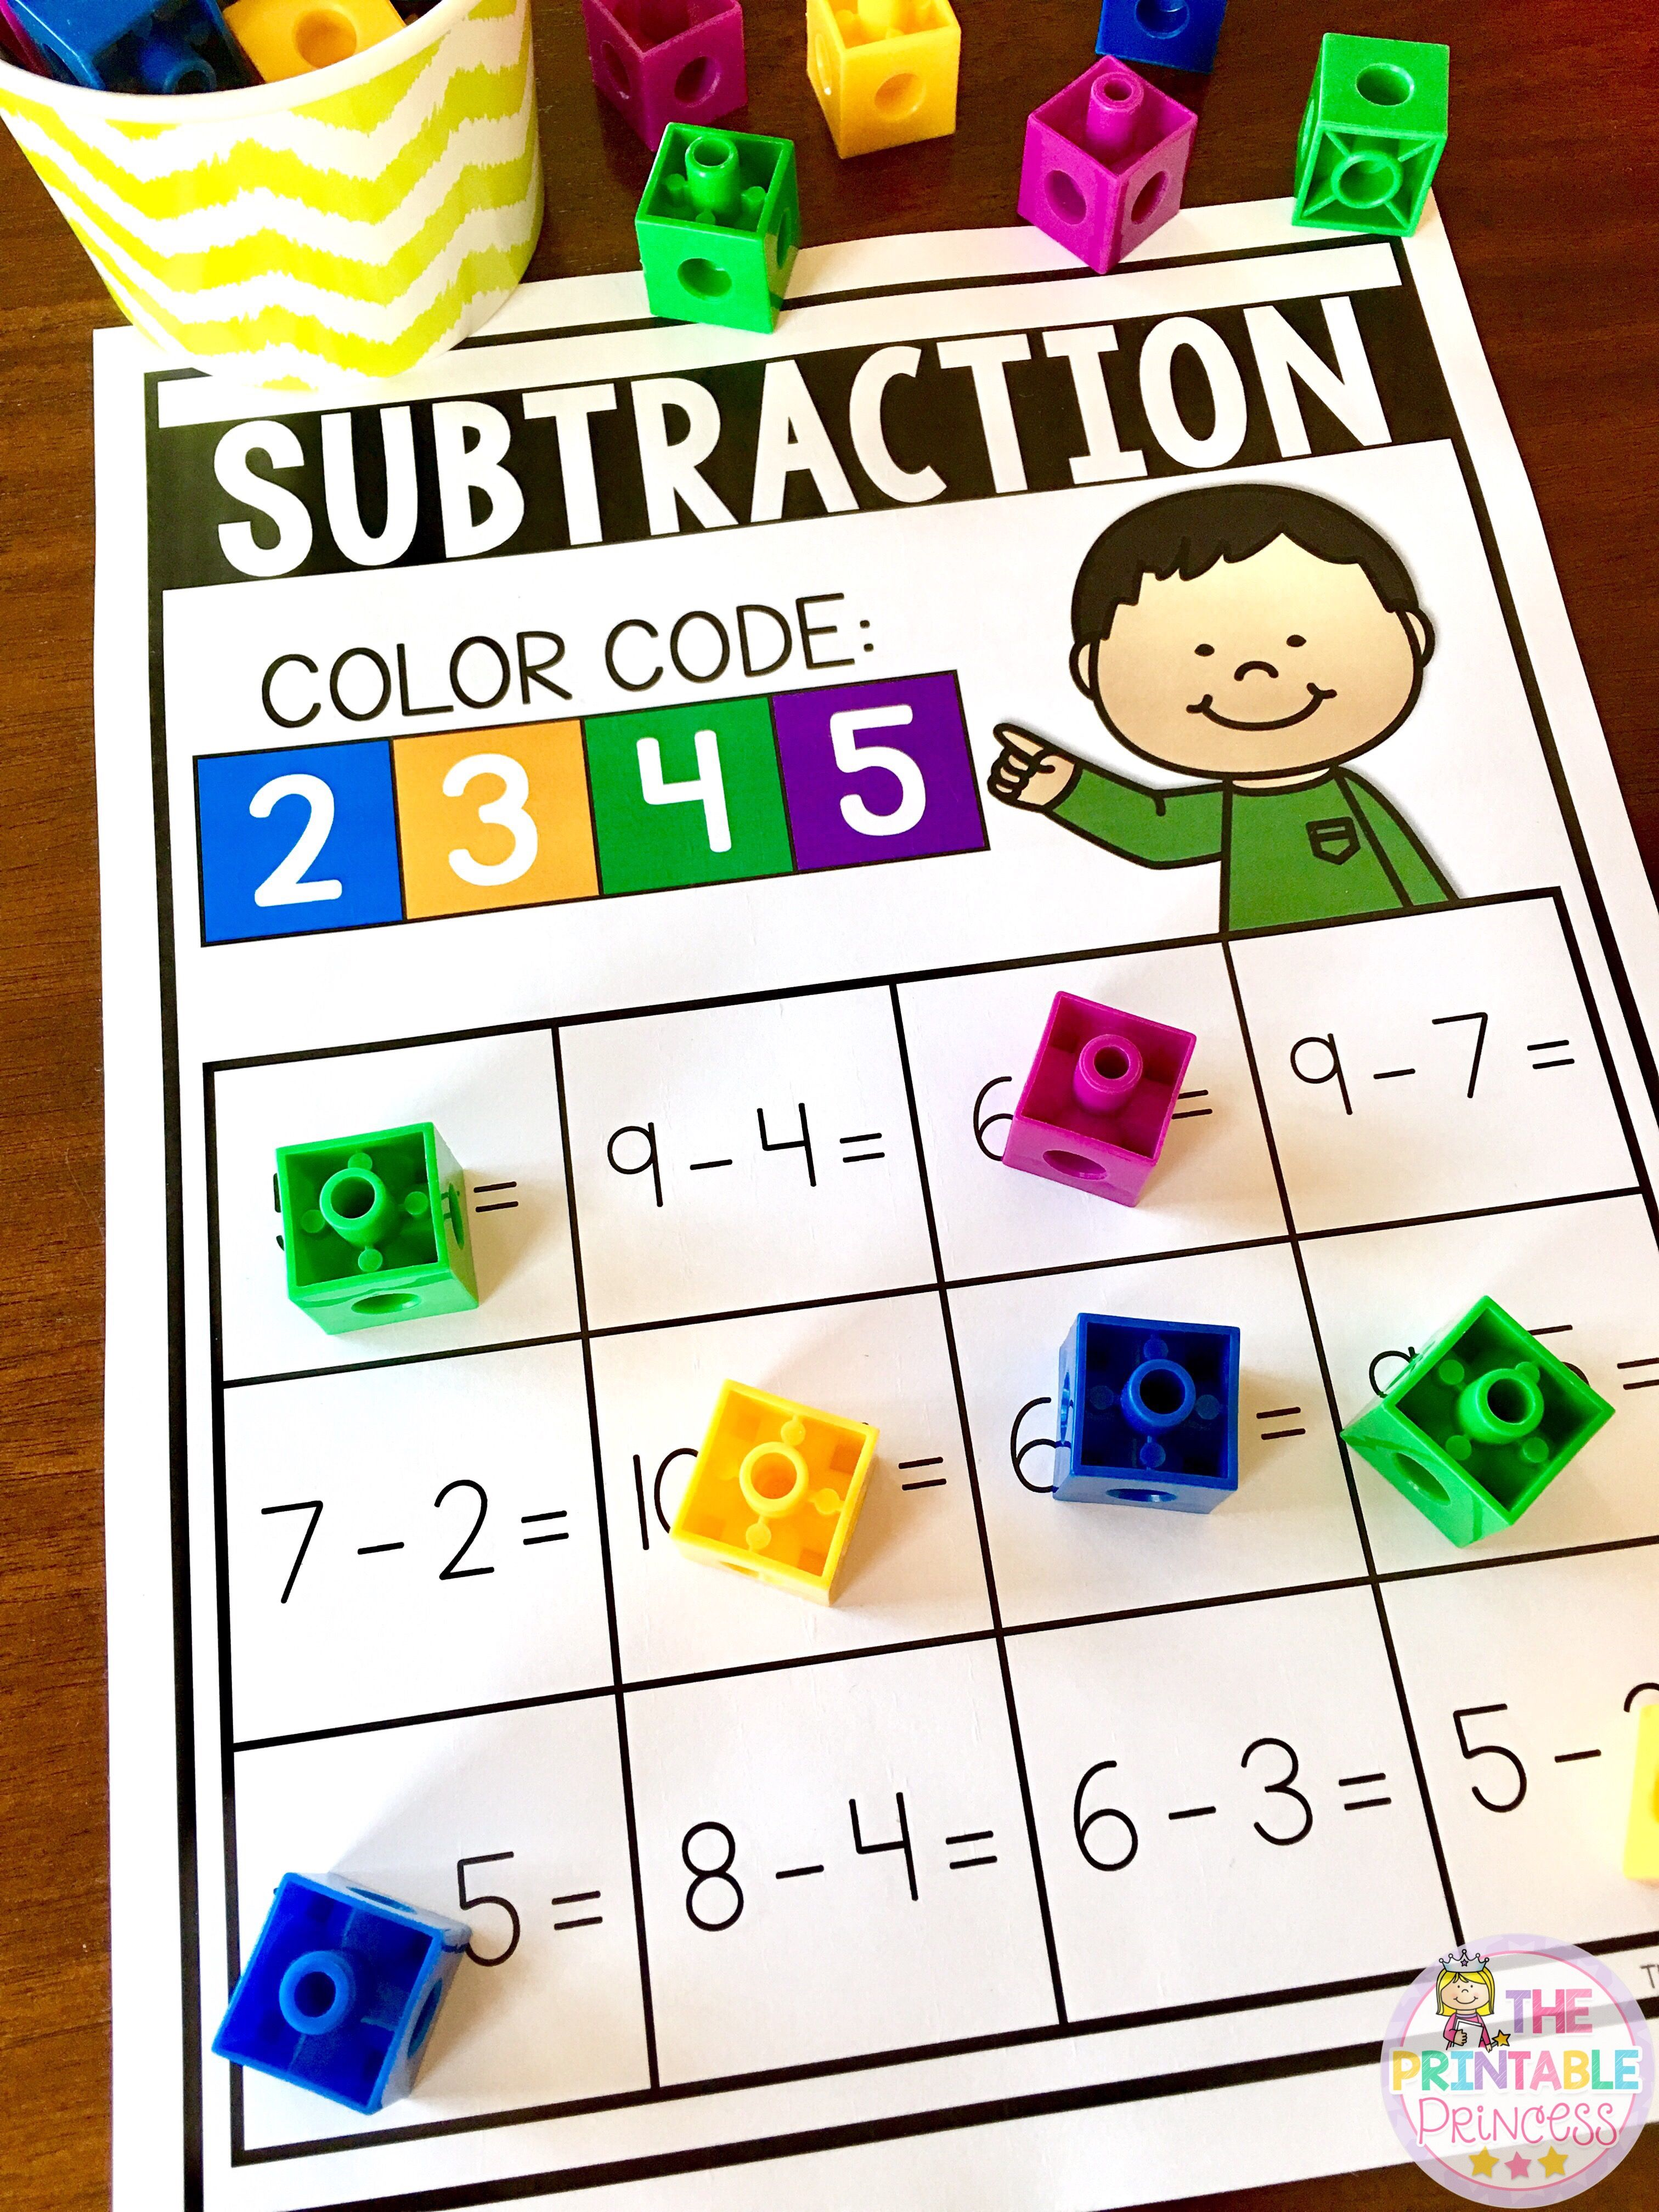 Check Out This Activity To Practice Addition And Subtraction Includes 24 Differe Addition And Subtraction Practice Subtraction Practice Subtraction Activities Adding and subtracting equations game